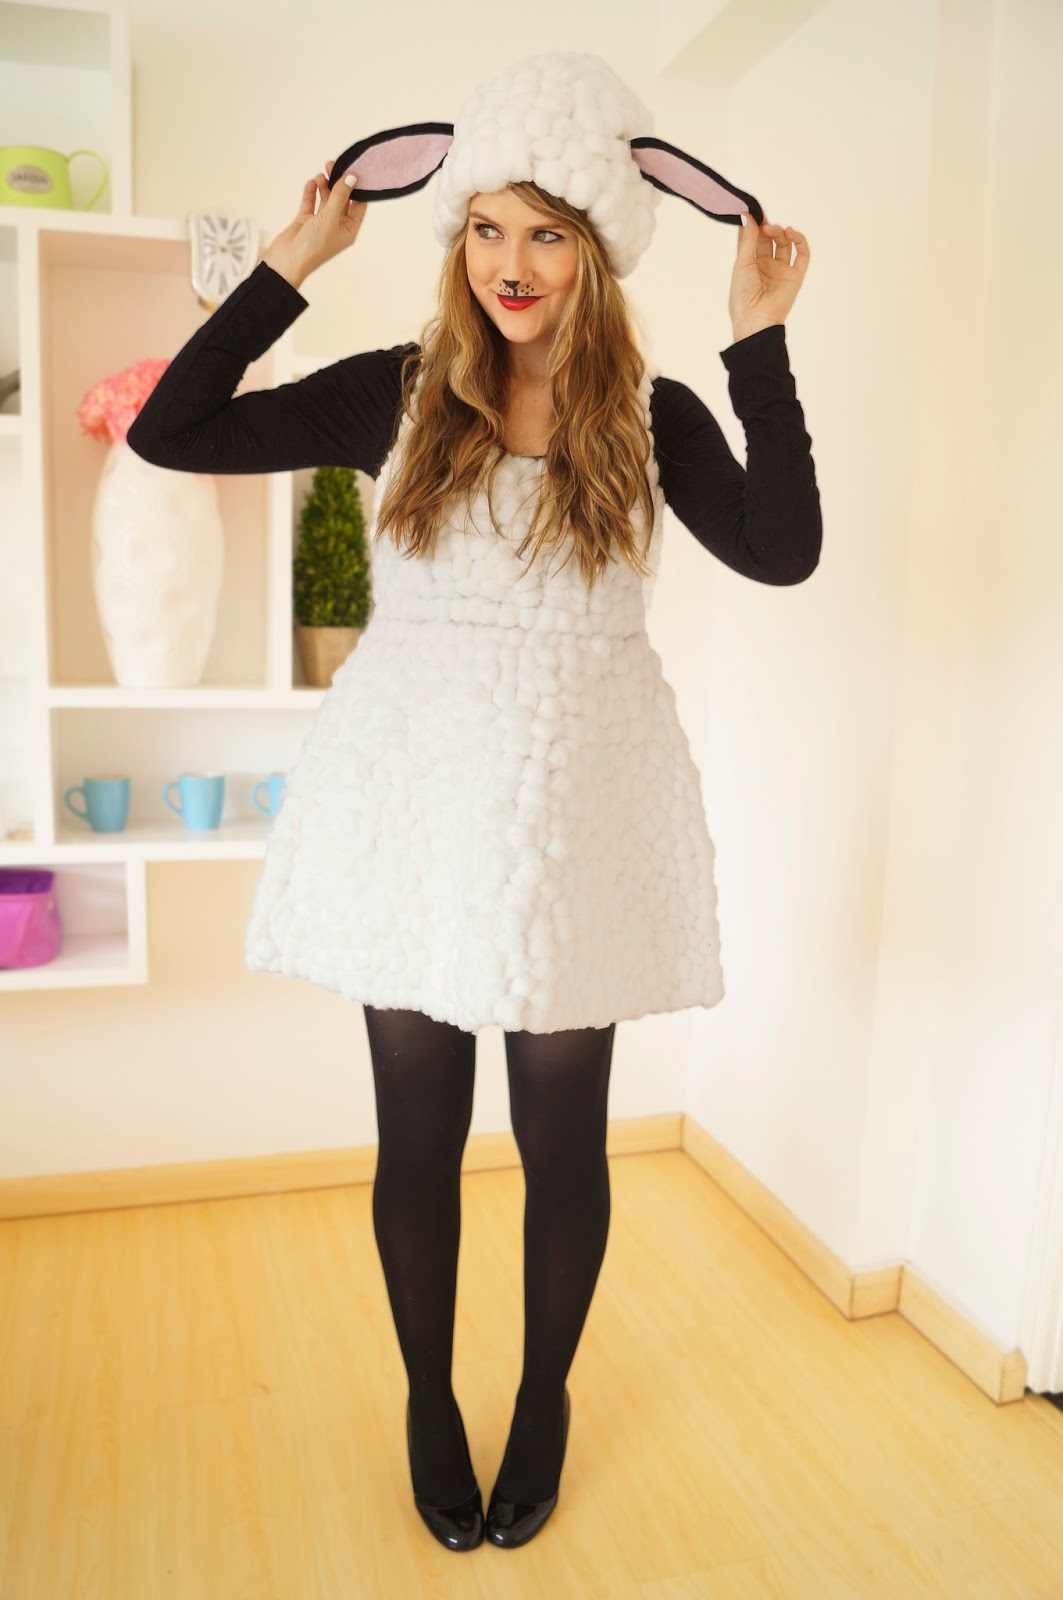 The Joy of Fashion: {Halloween}: Cute Homemade Lamb Costume